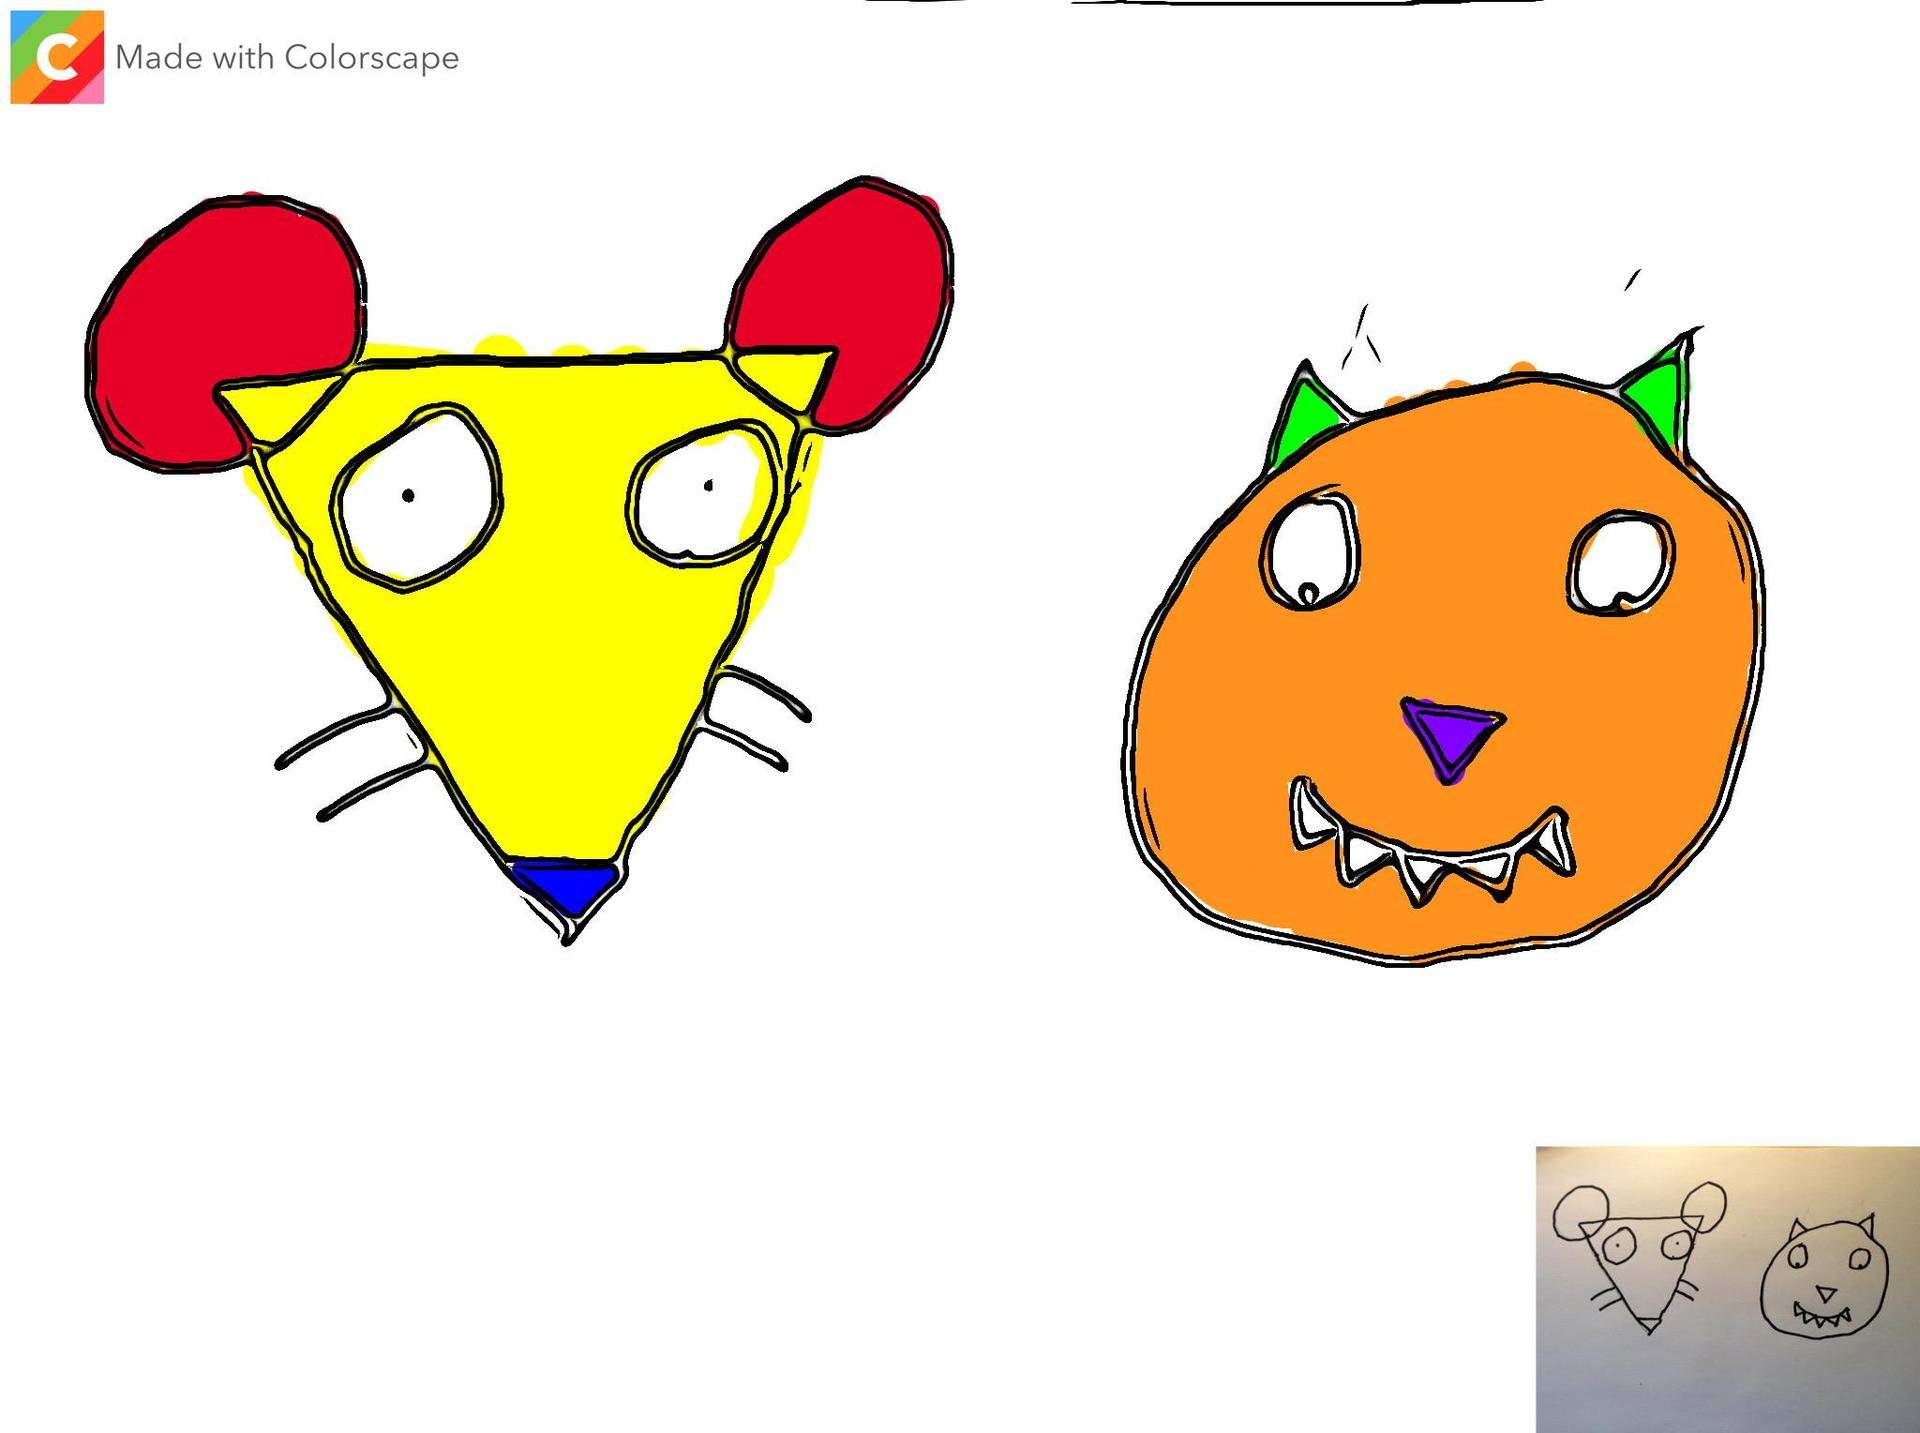 Kindergarten digital art - Cat and Mouse made out of shapes